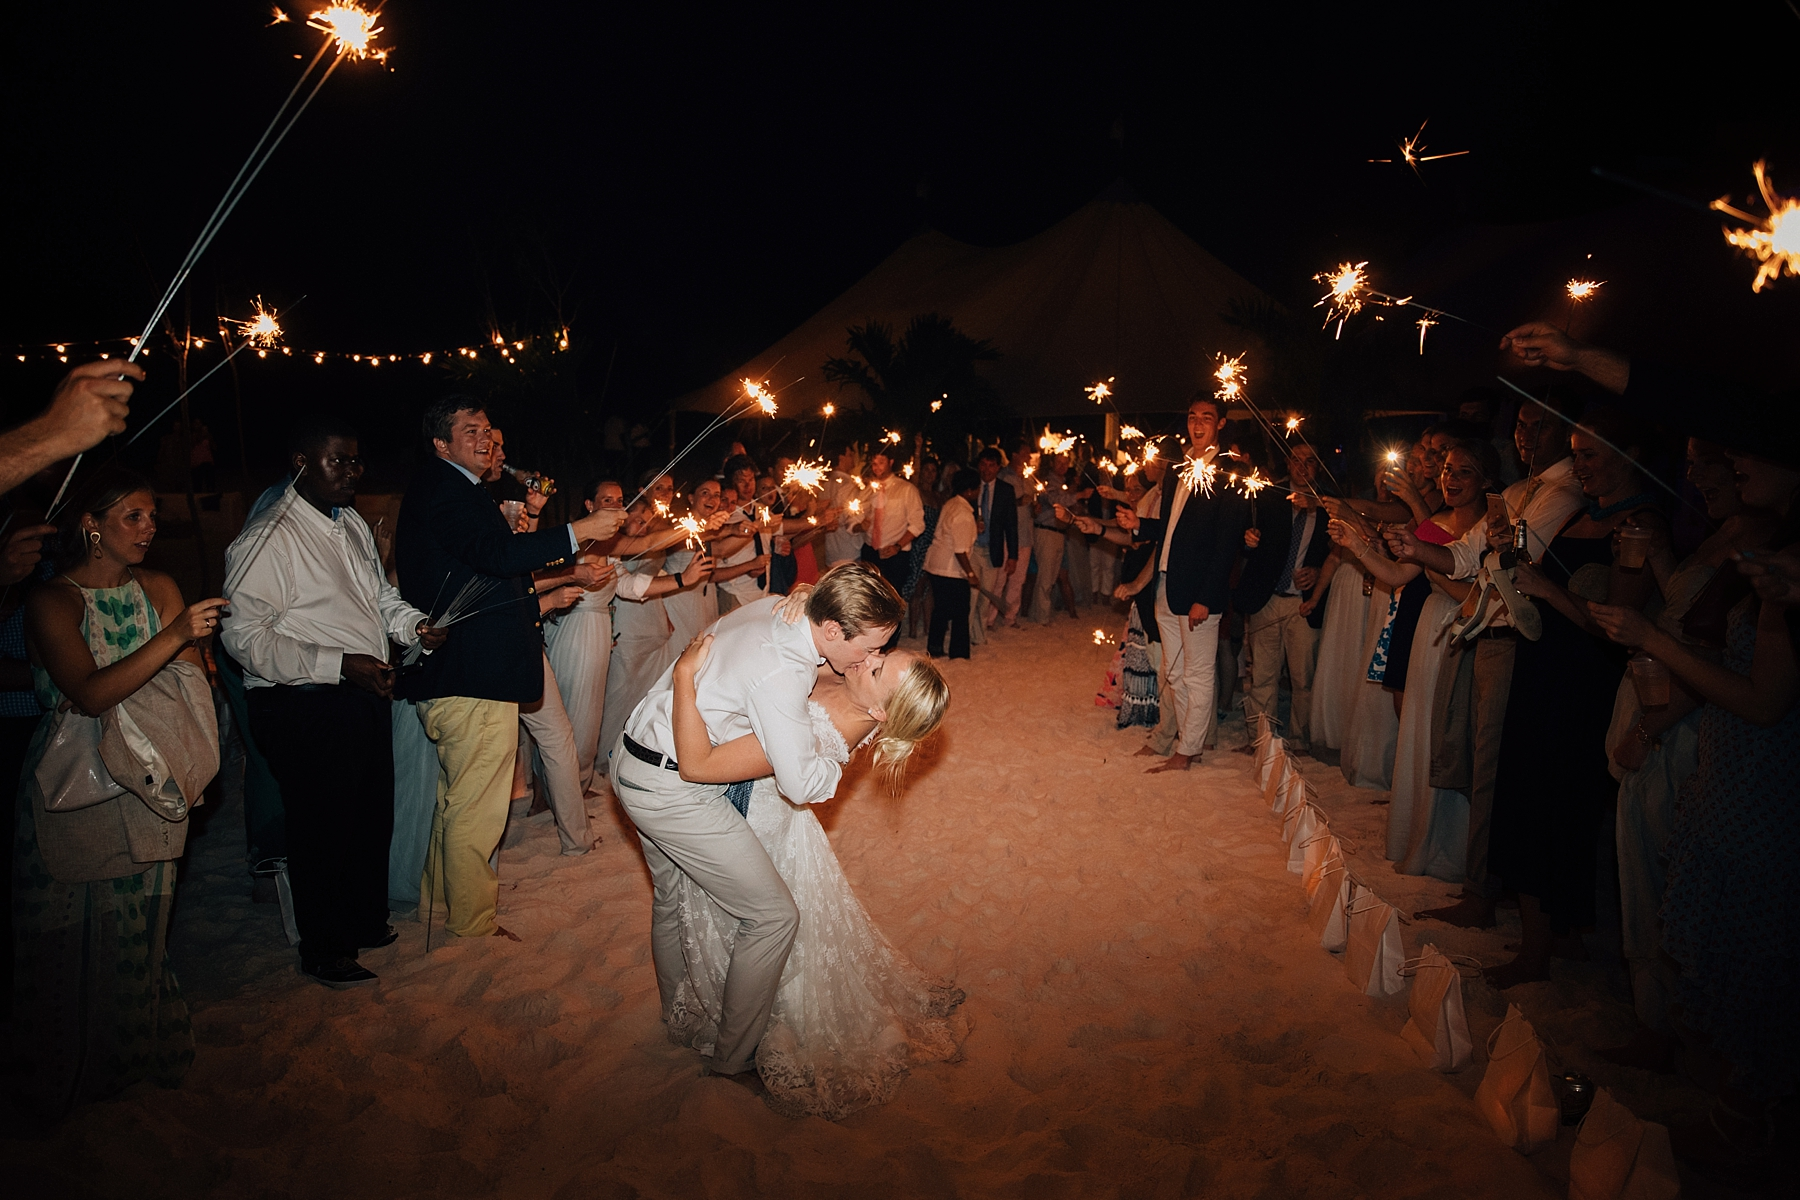 briland-wedding-photographer-harbour-island-bahamas_0057.jpg